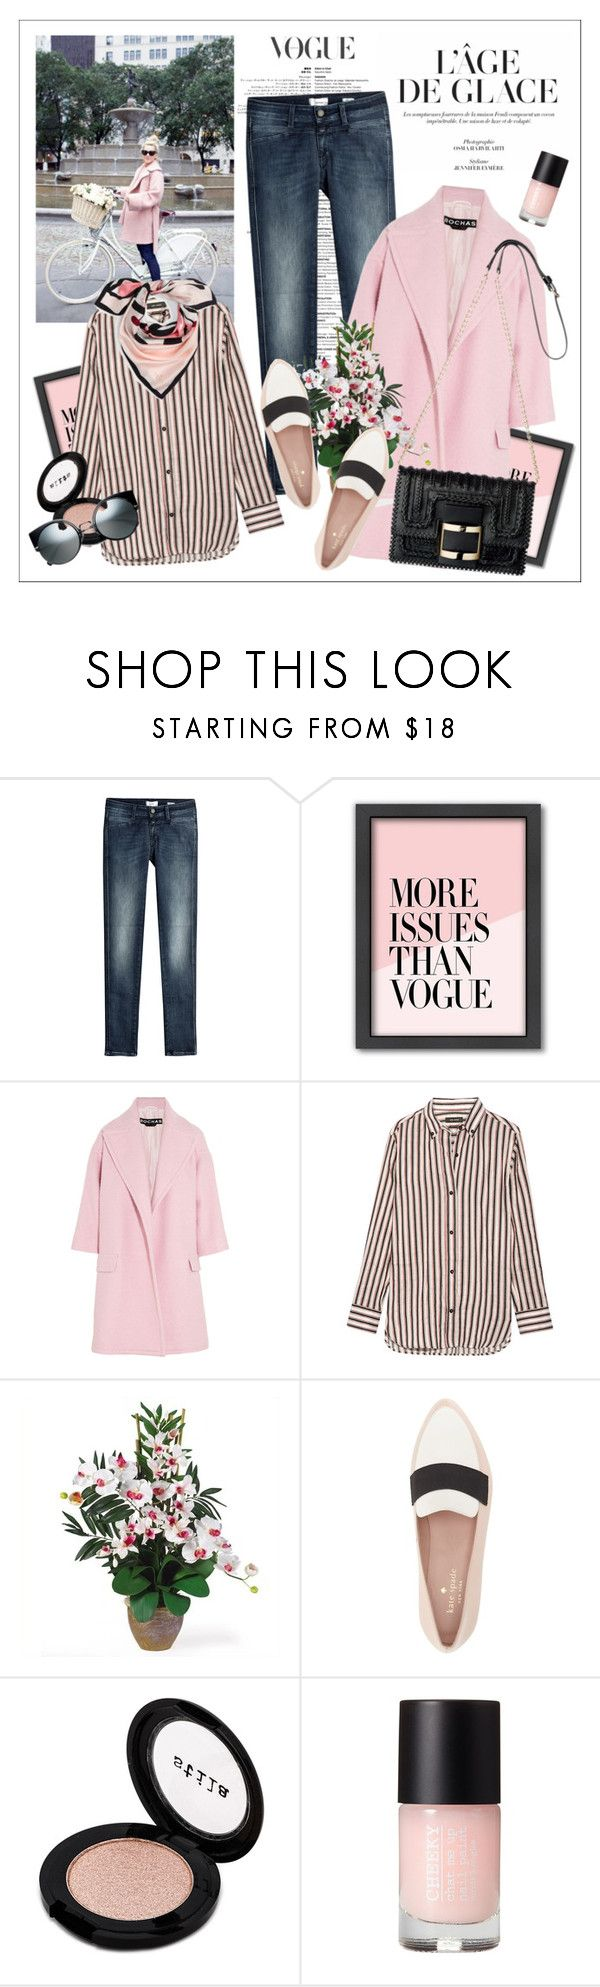 """""""L'âge de glace"""" by amaryllis ❤ liked on Polyvore featuring Closed, Americanflat, Rochas, Isabel Marant, Nearly Natural, Kate Spade and Stila"""